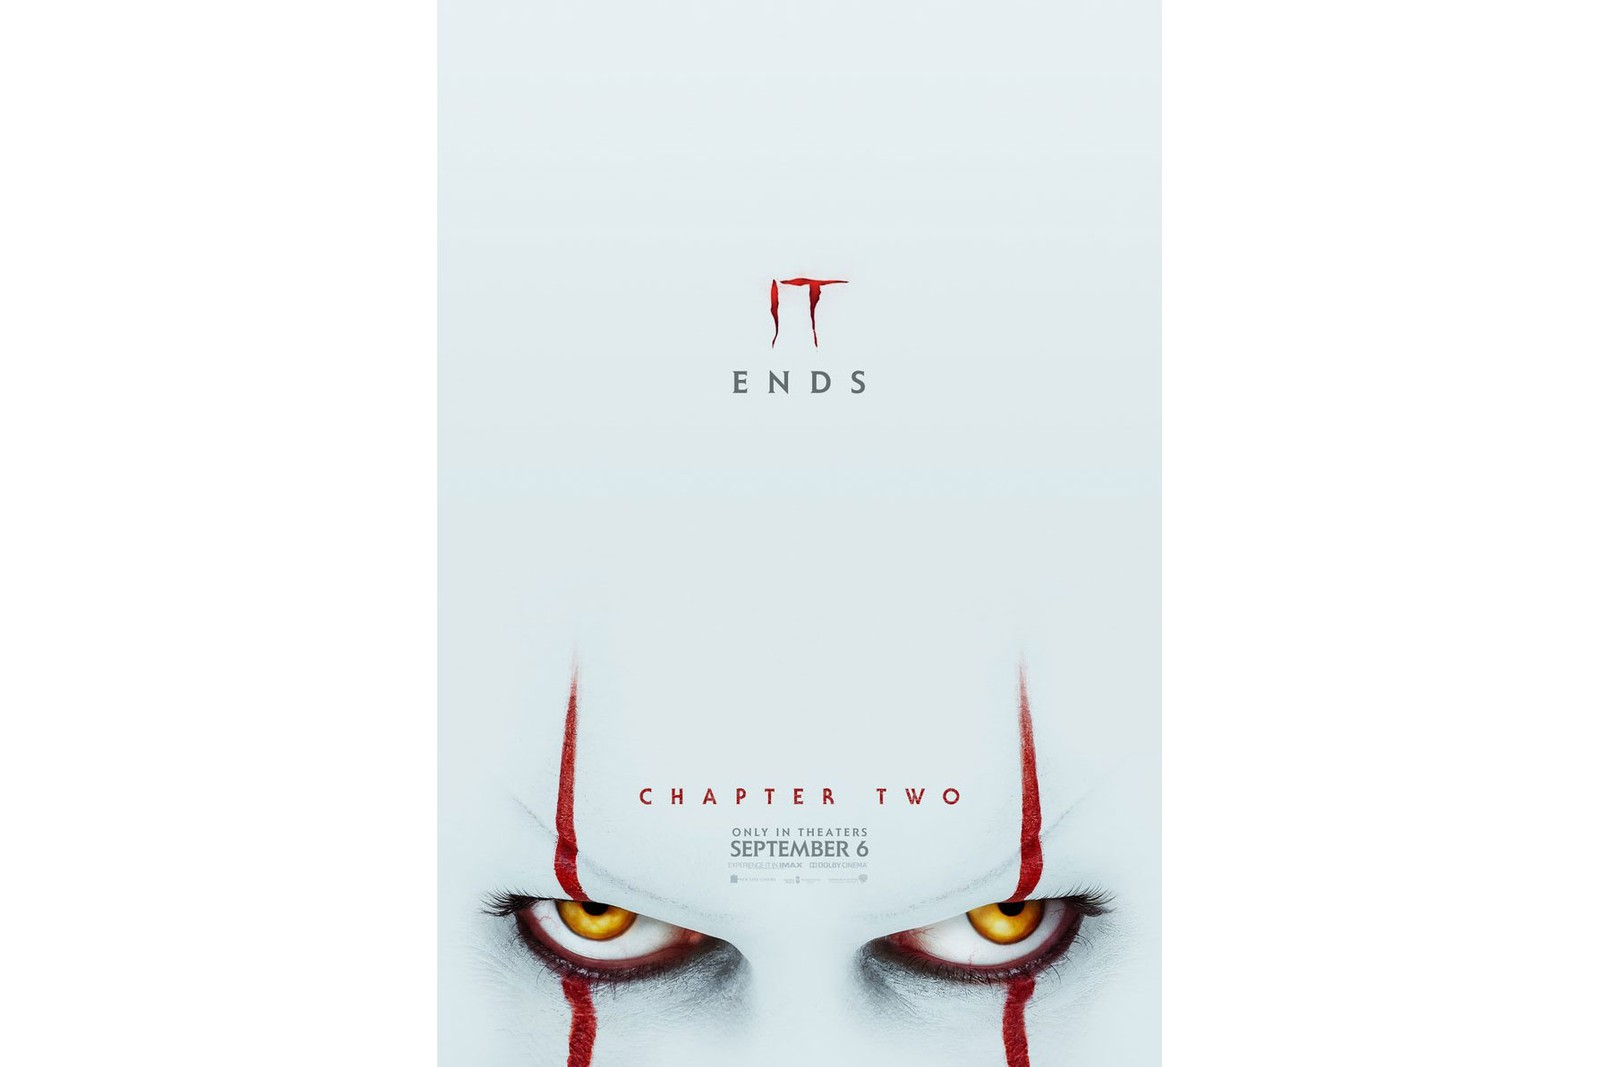 'IT: Chapter 2' Drops Second Trailer movies films pennywise stephen king the losers club Pennywise poster evil clown